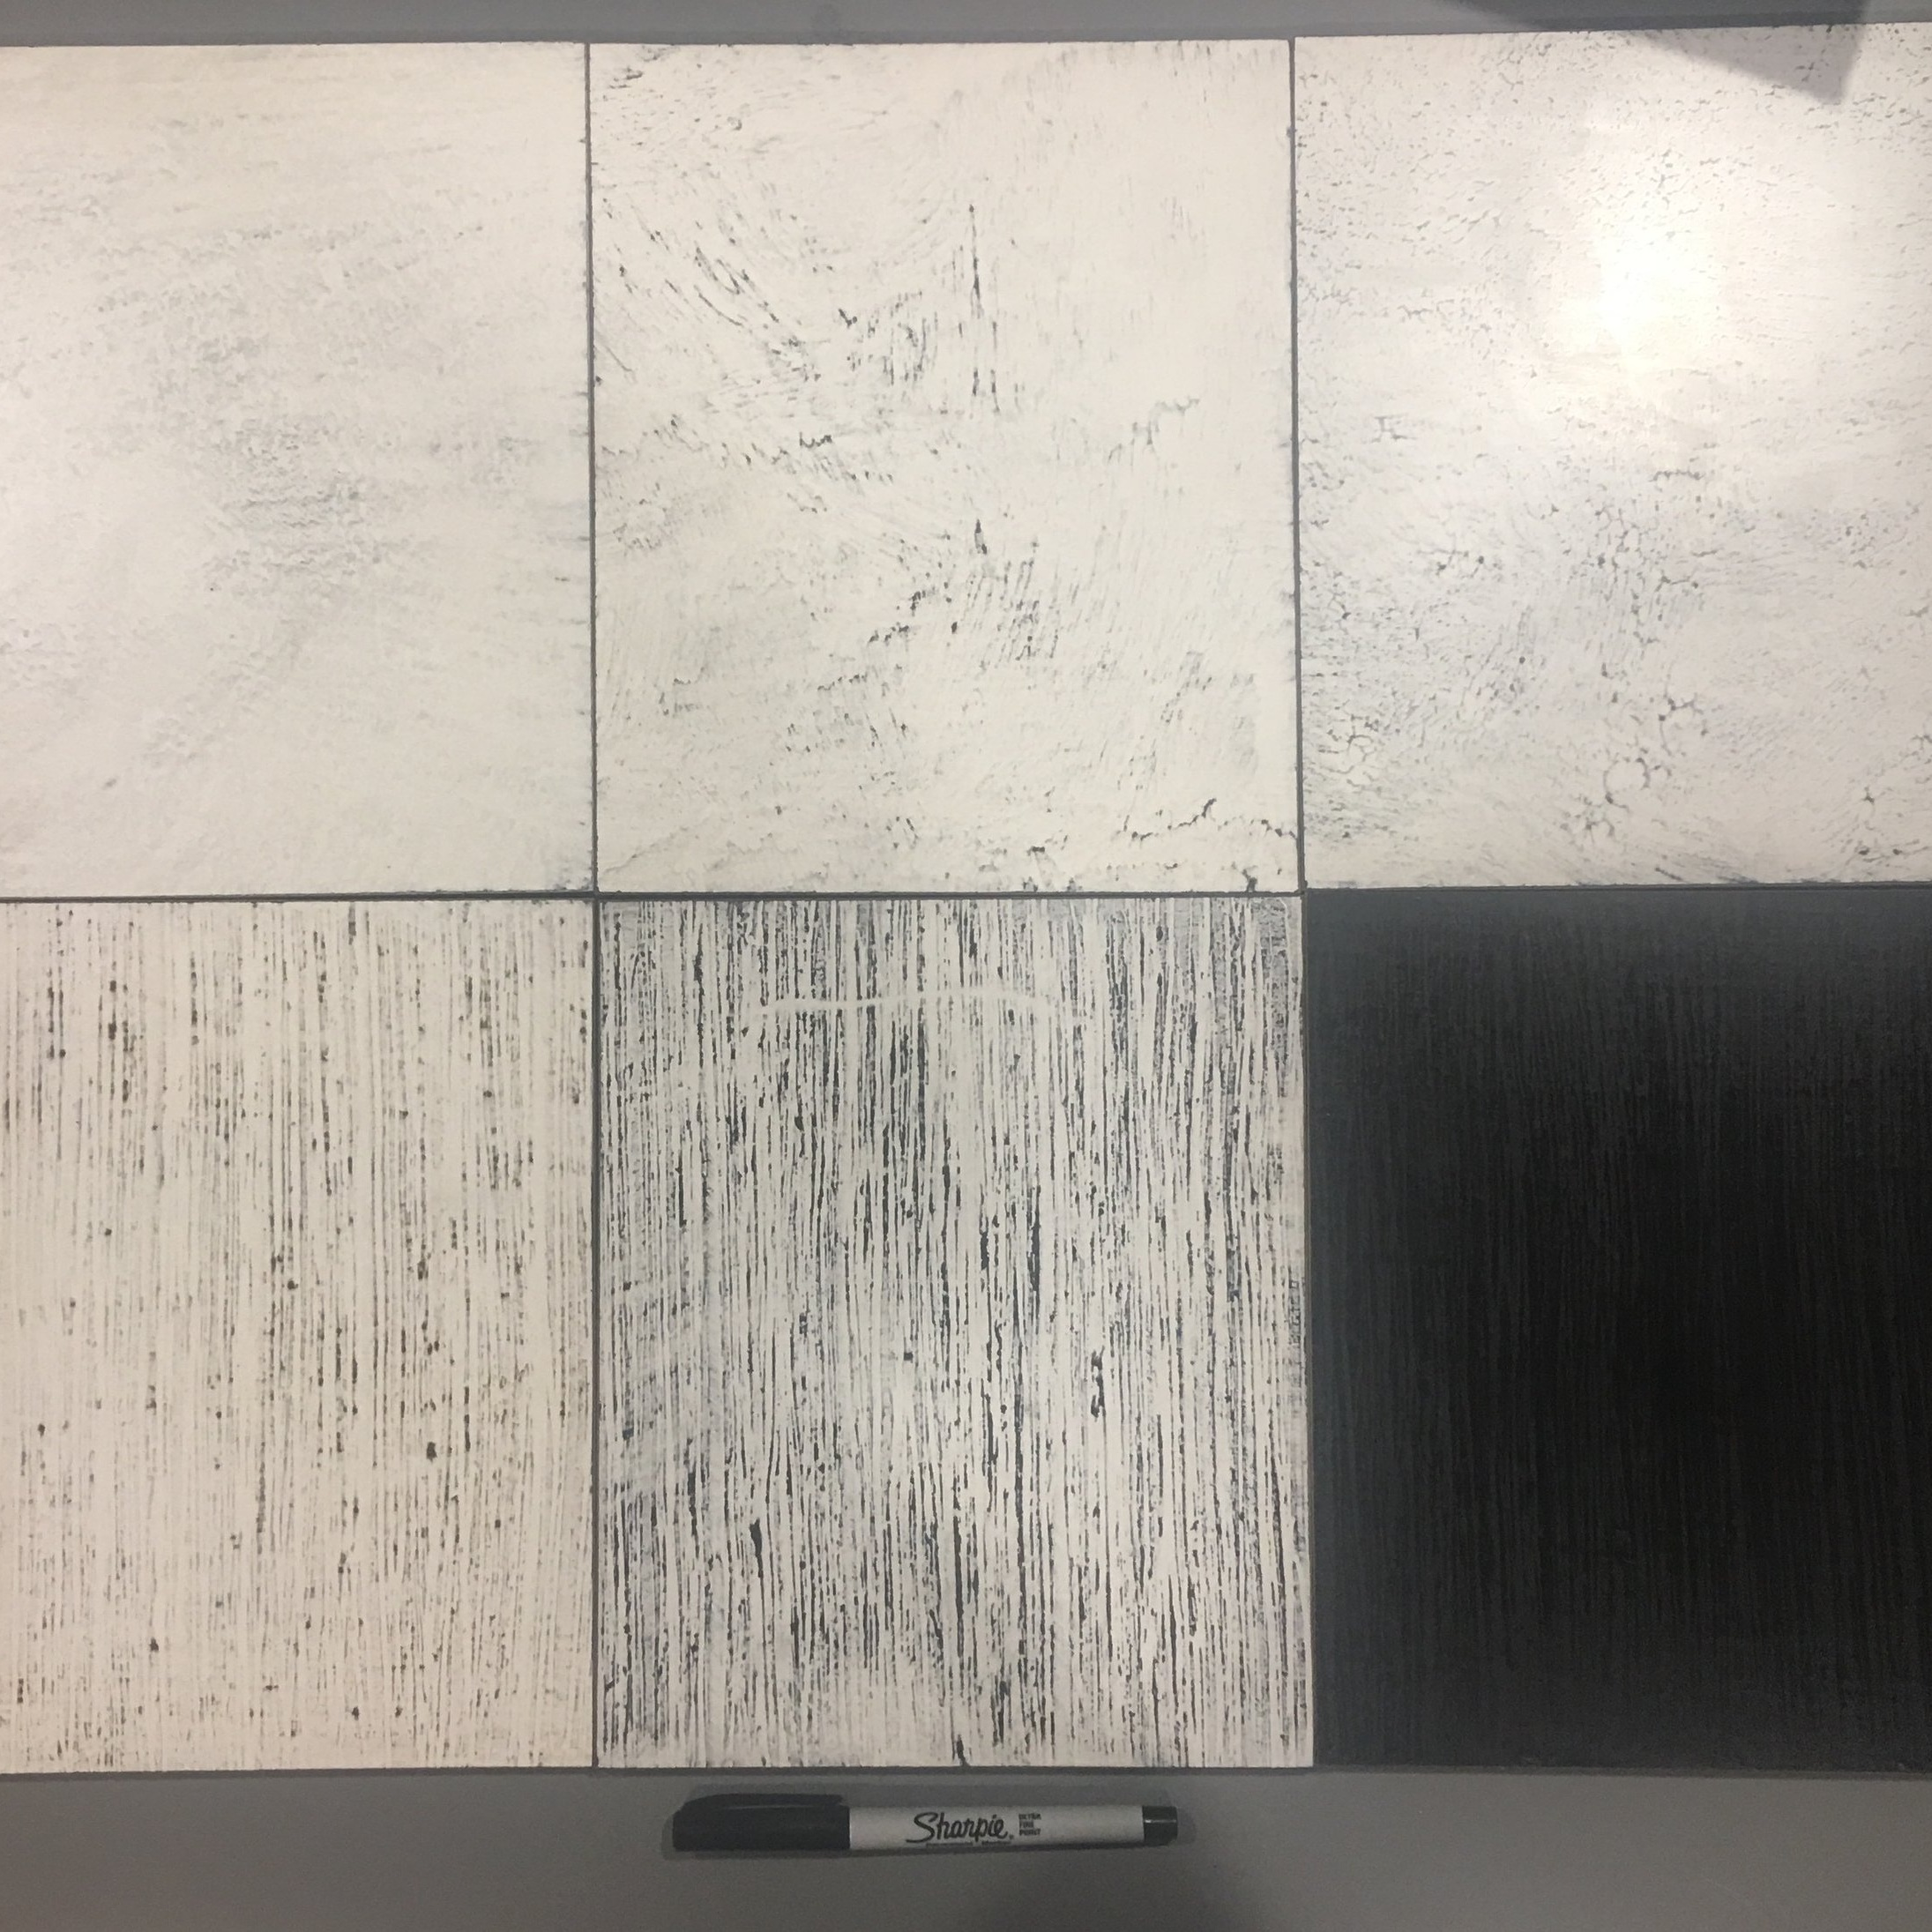 CUSTOM DESIGNS - We have the ability to create custom Marmorino plaster designs that are unique to every project based on the ideas of our Architects, Interior Designers and clients.